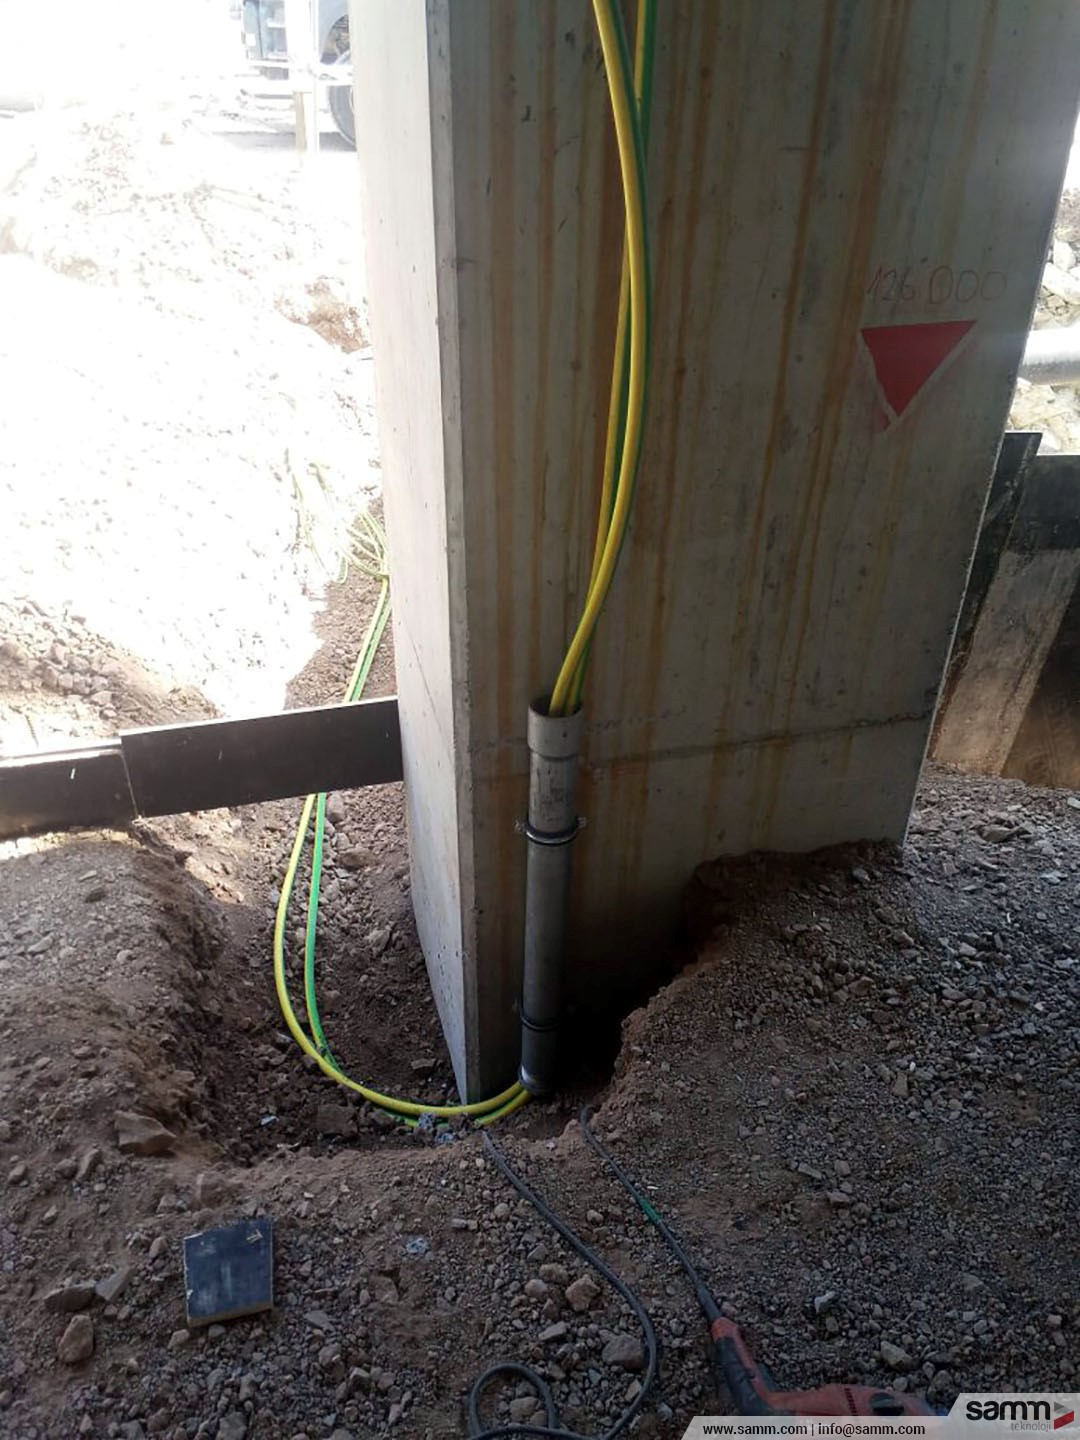 Samm Teknoloji  Grounding cable installation from the main grid between substation floors.